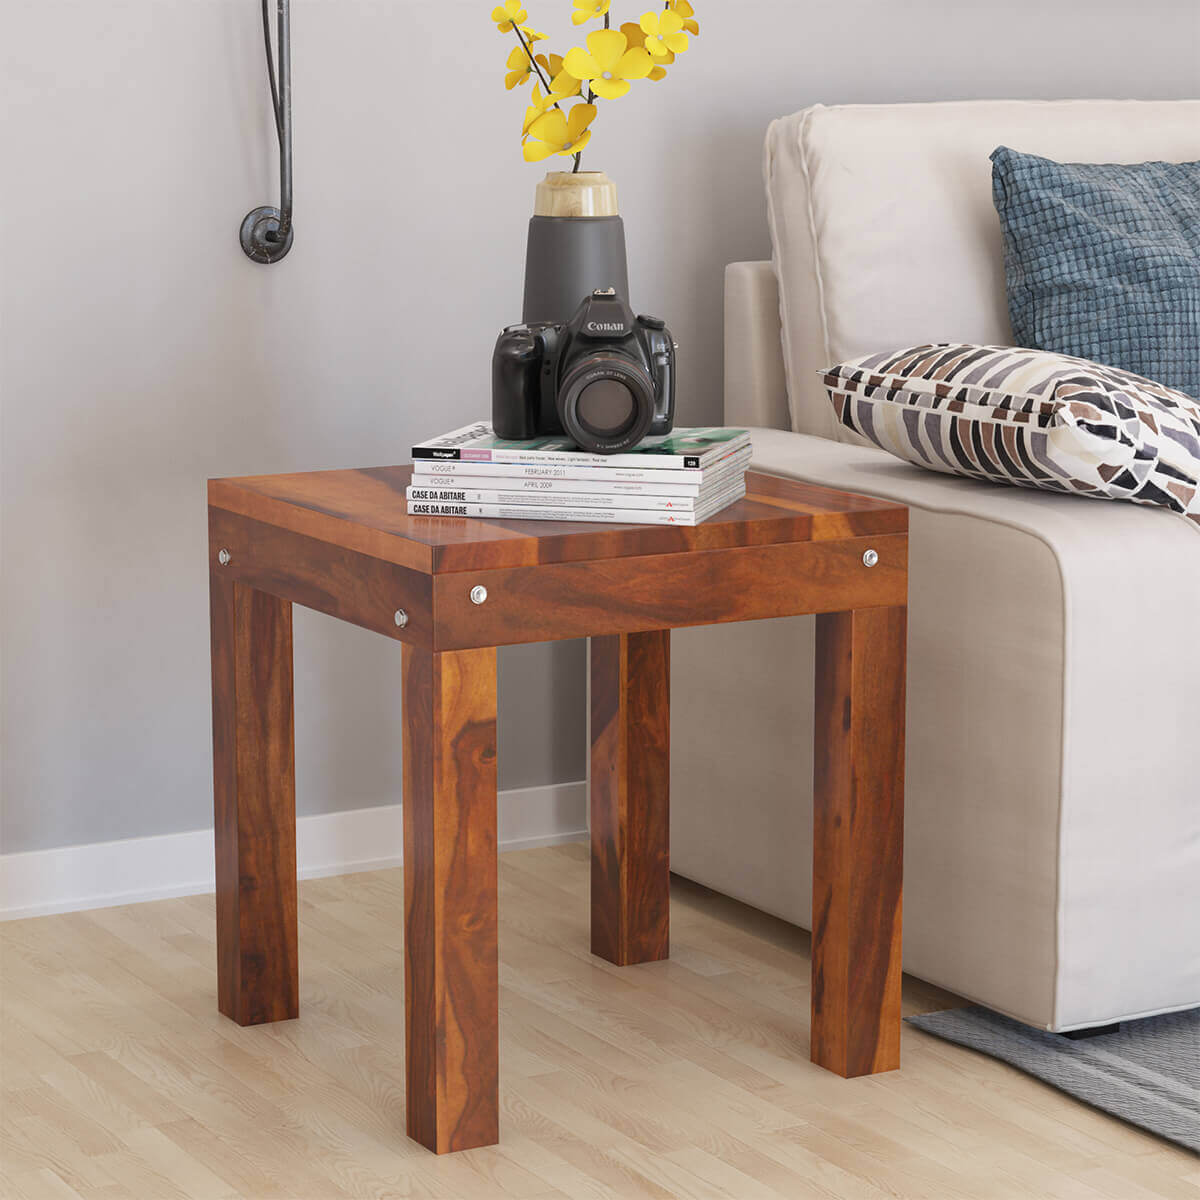 Rustic Wood End Table Patet Rustic Style Solid Wood End Table